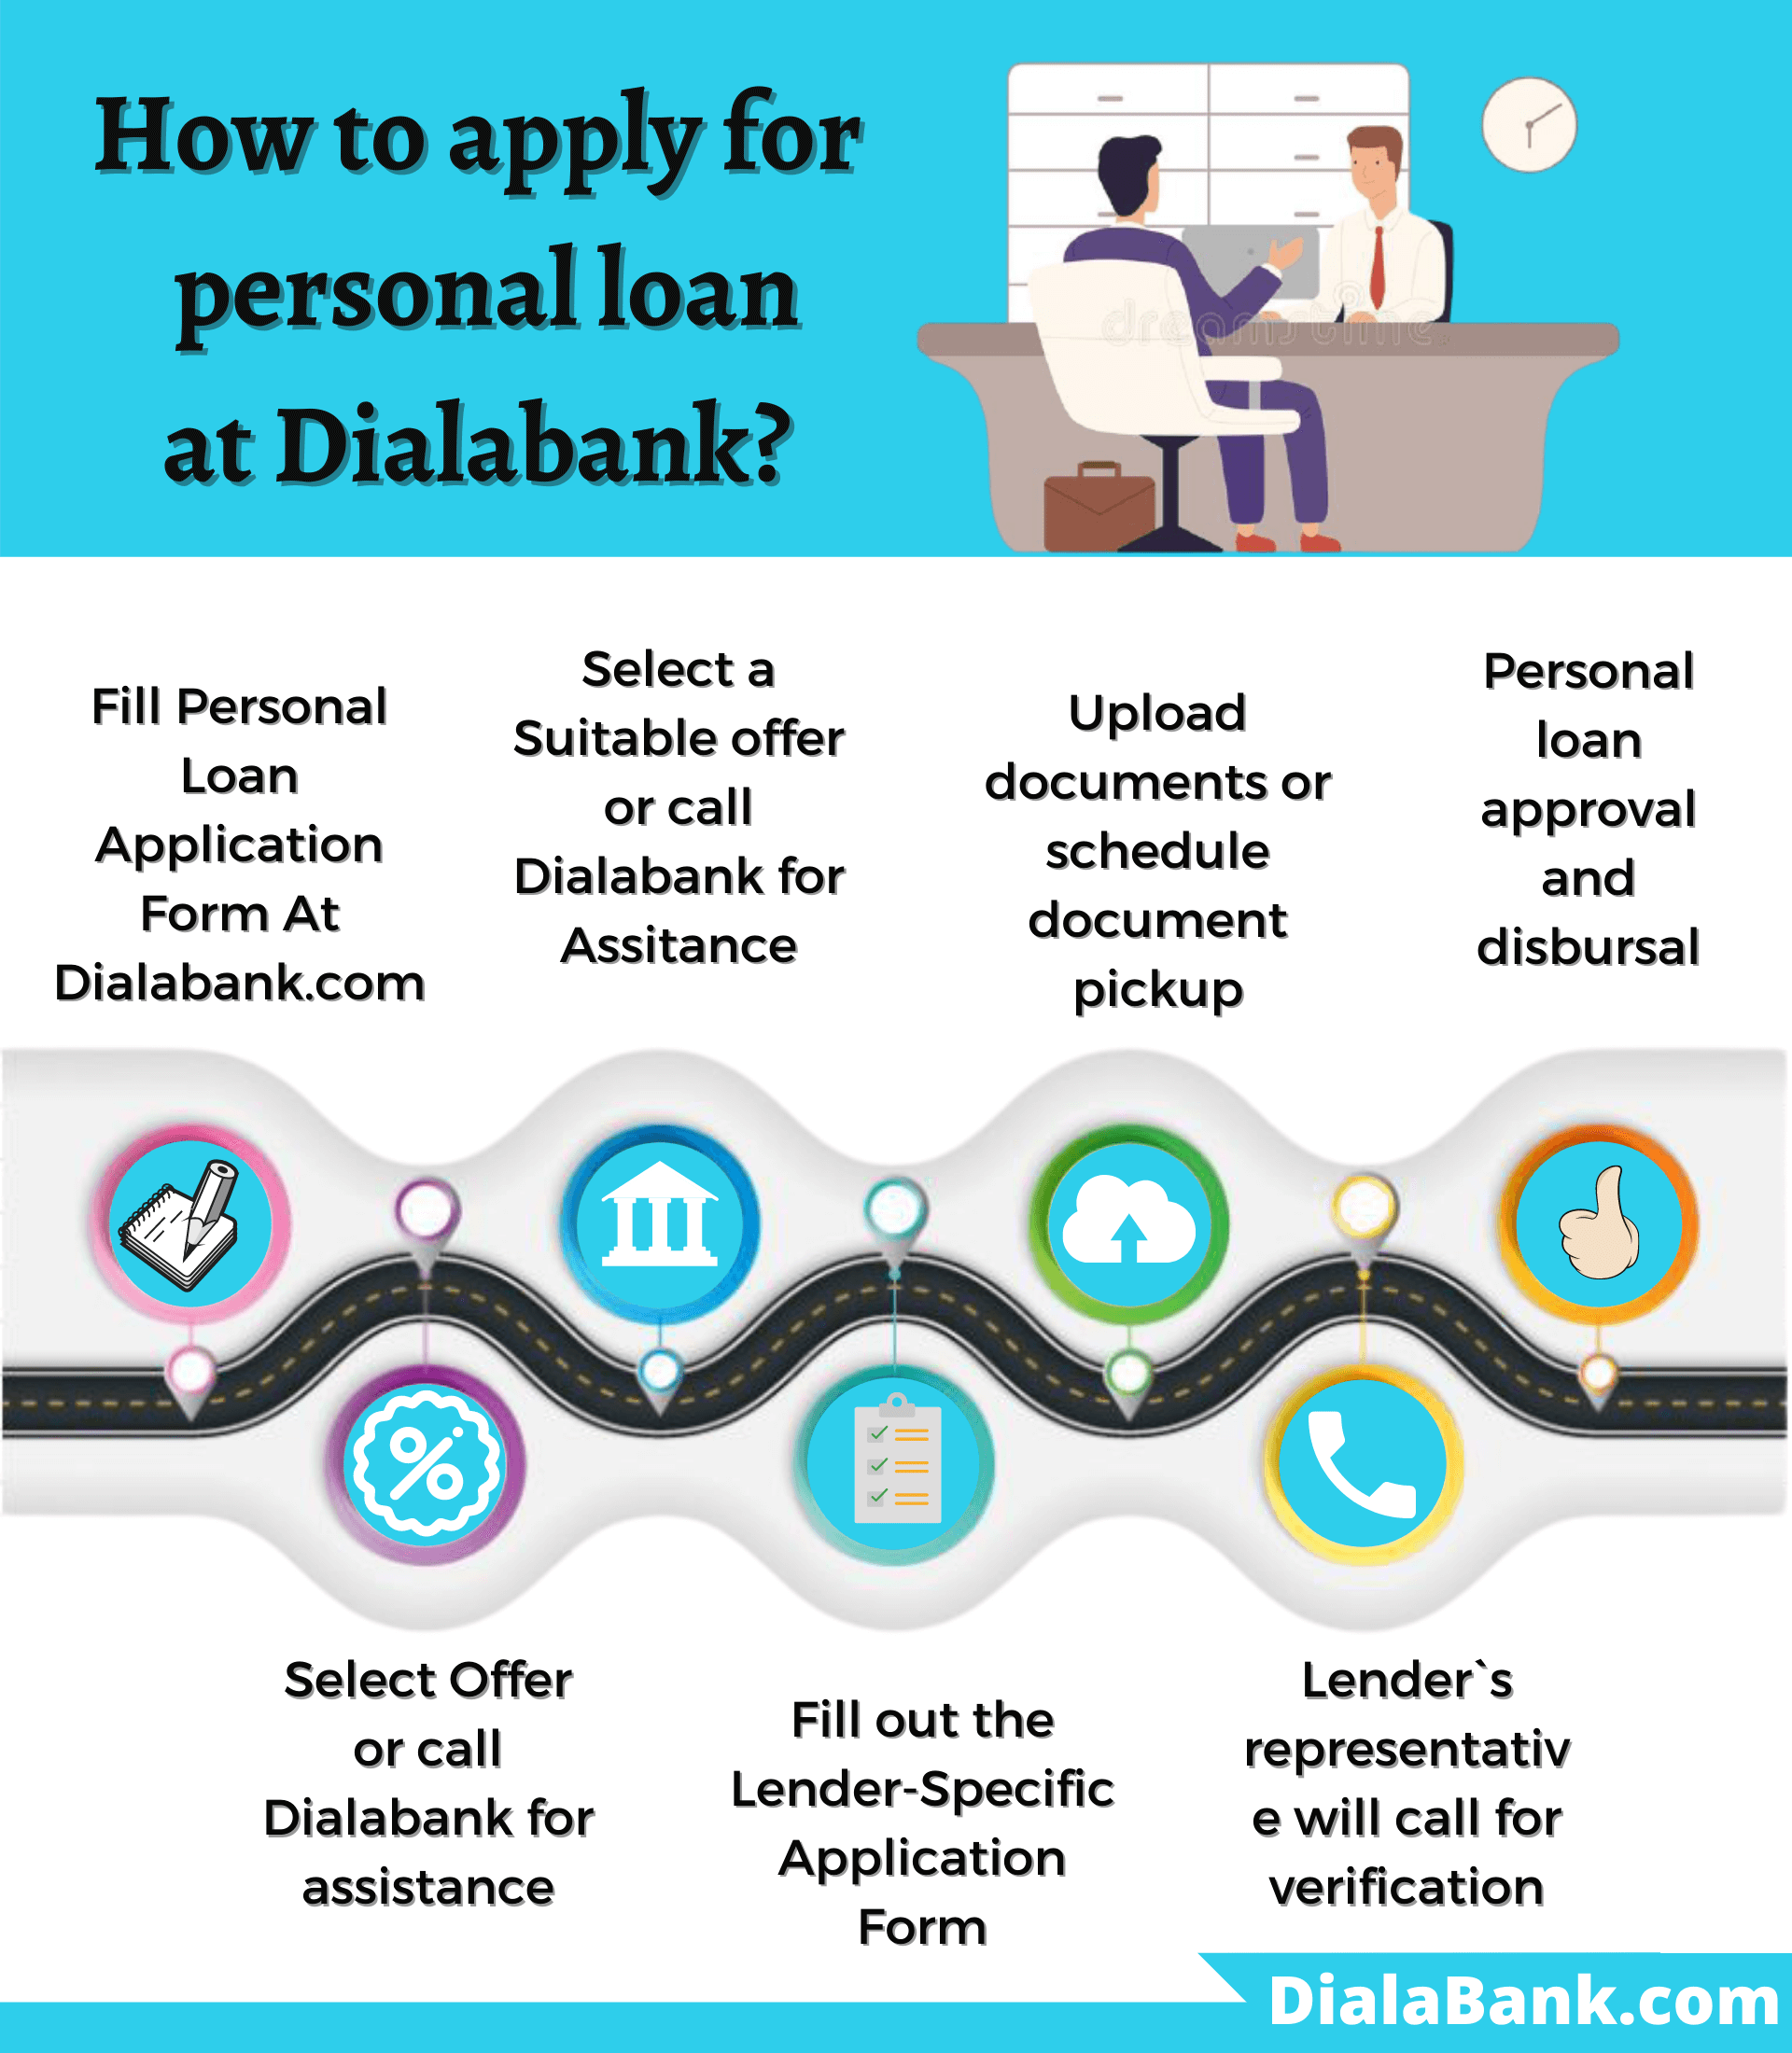 State Bank of Hyderabad Personal Loan